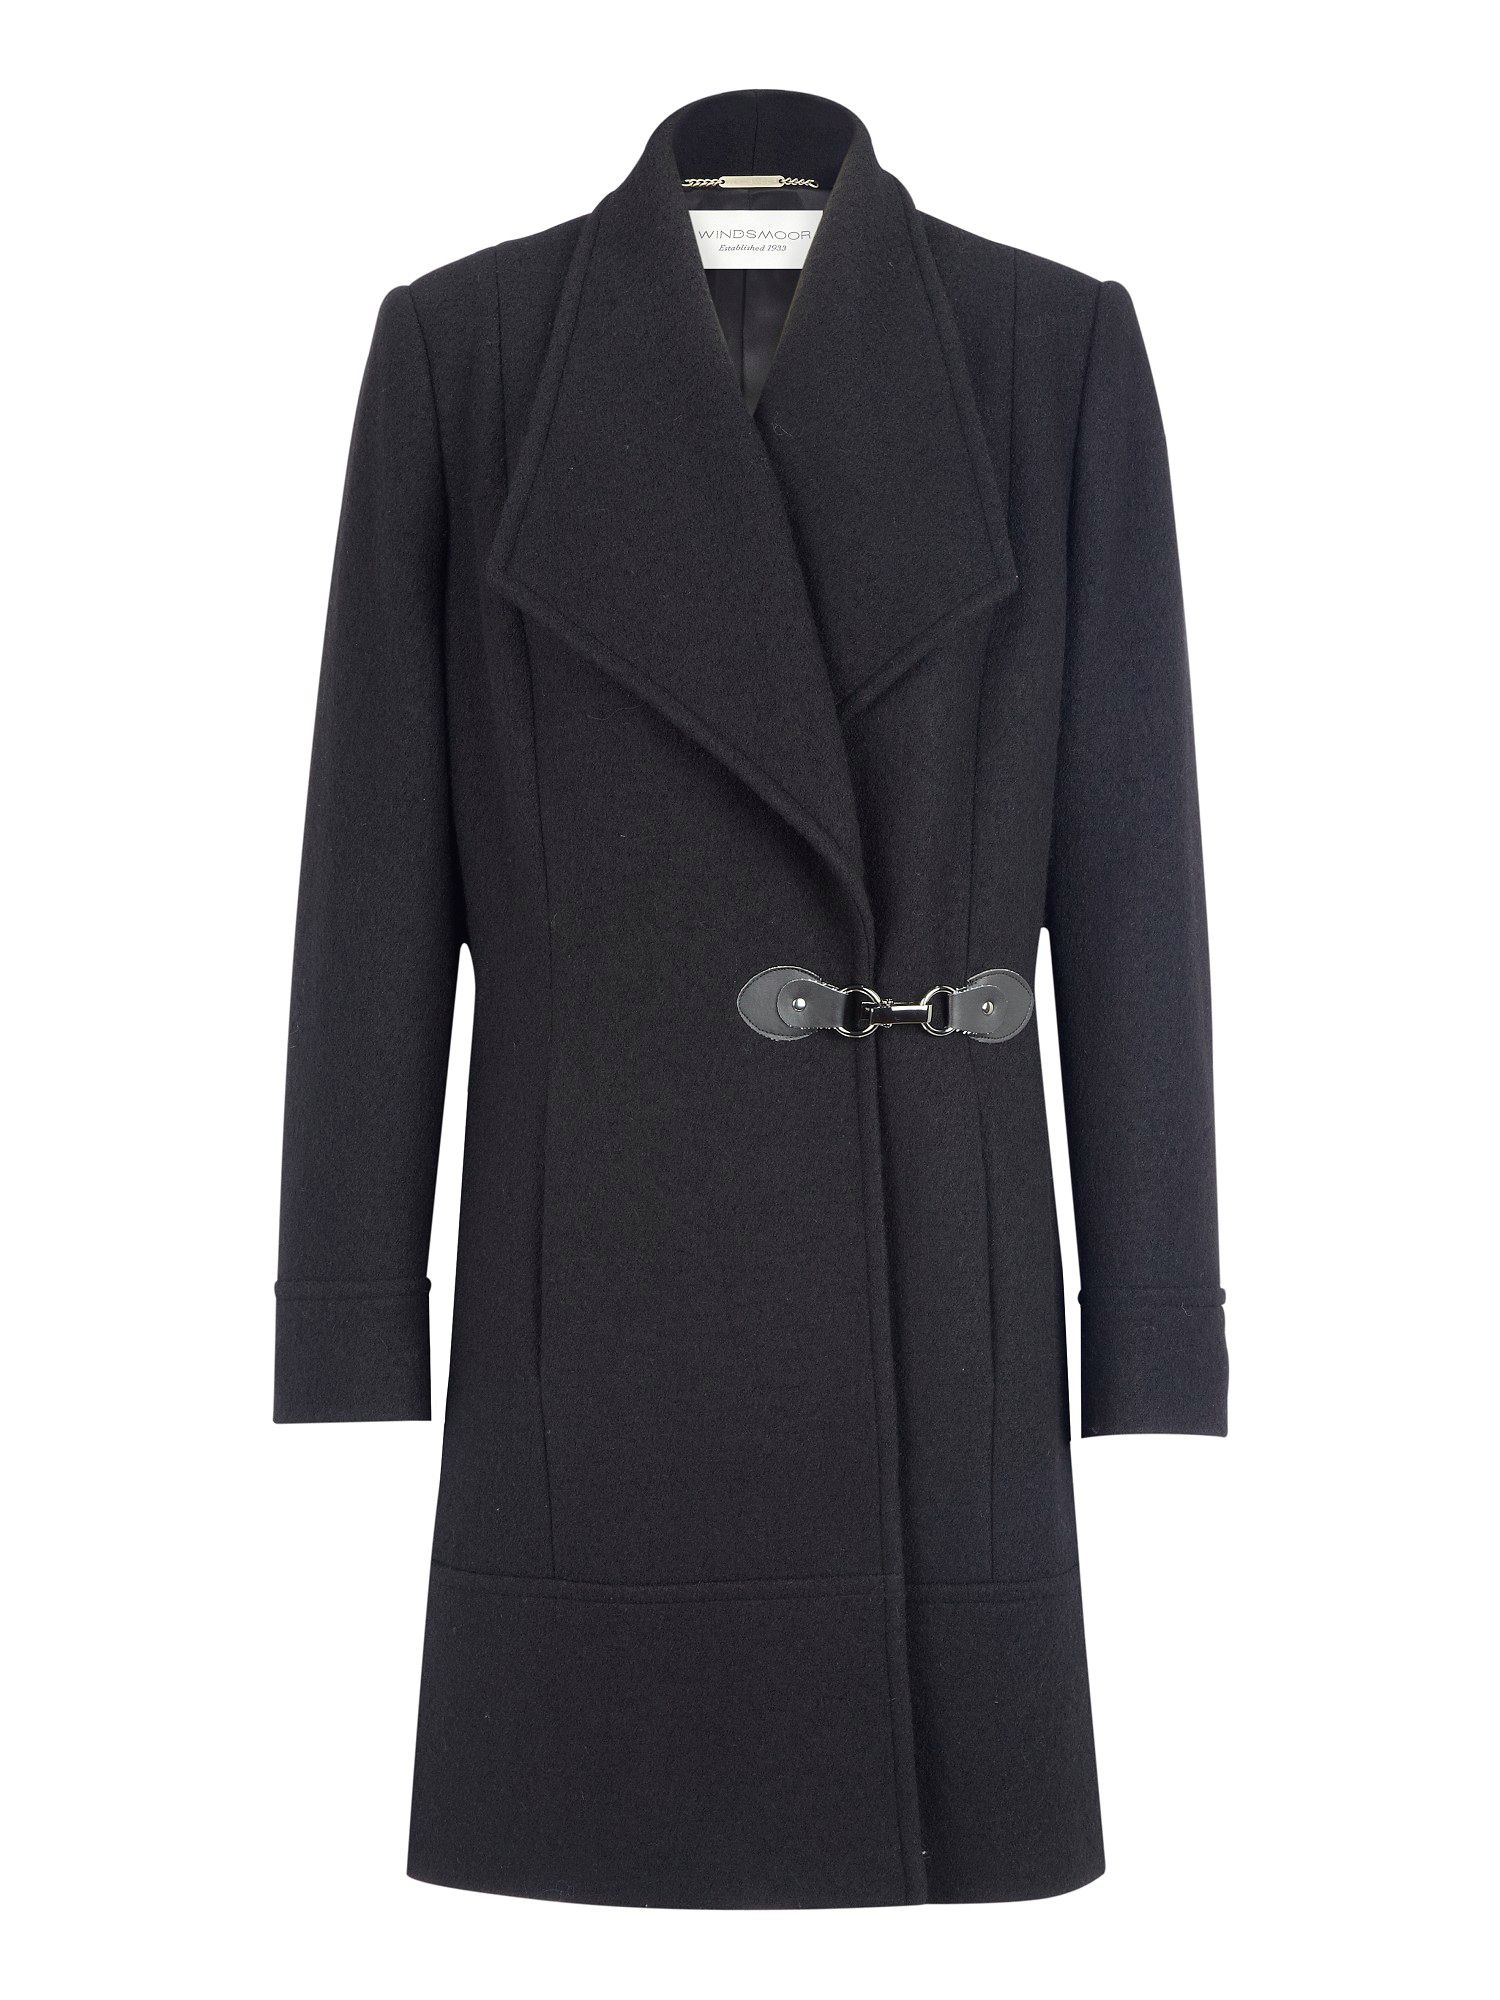 Black wing collar coat